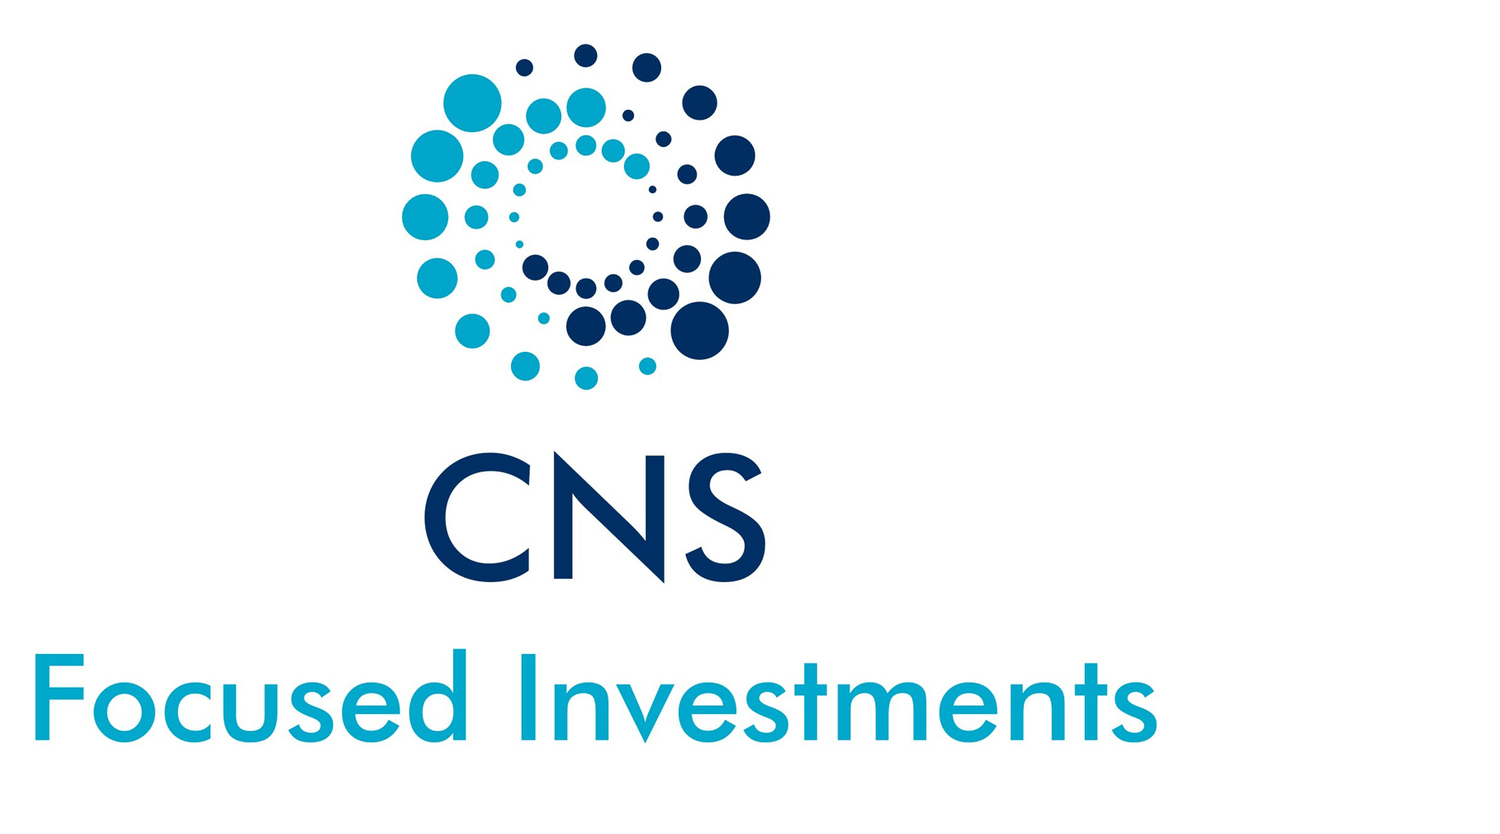 CNS Focused Investments